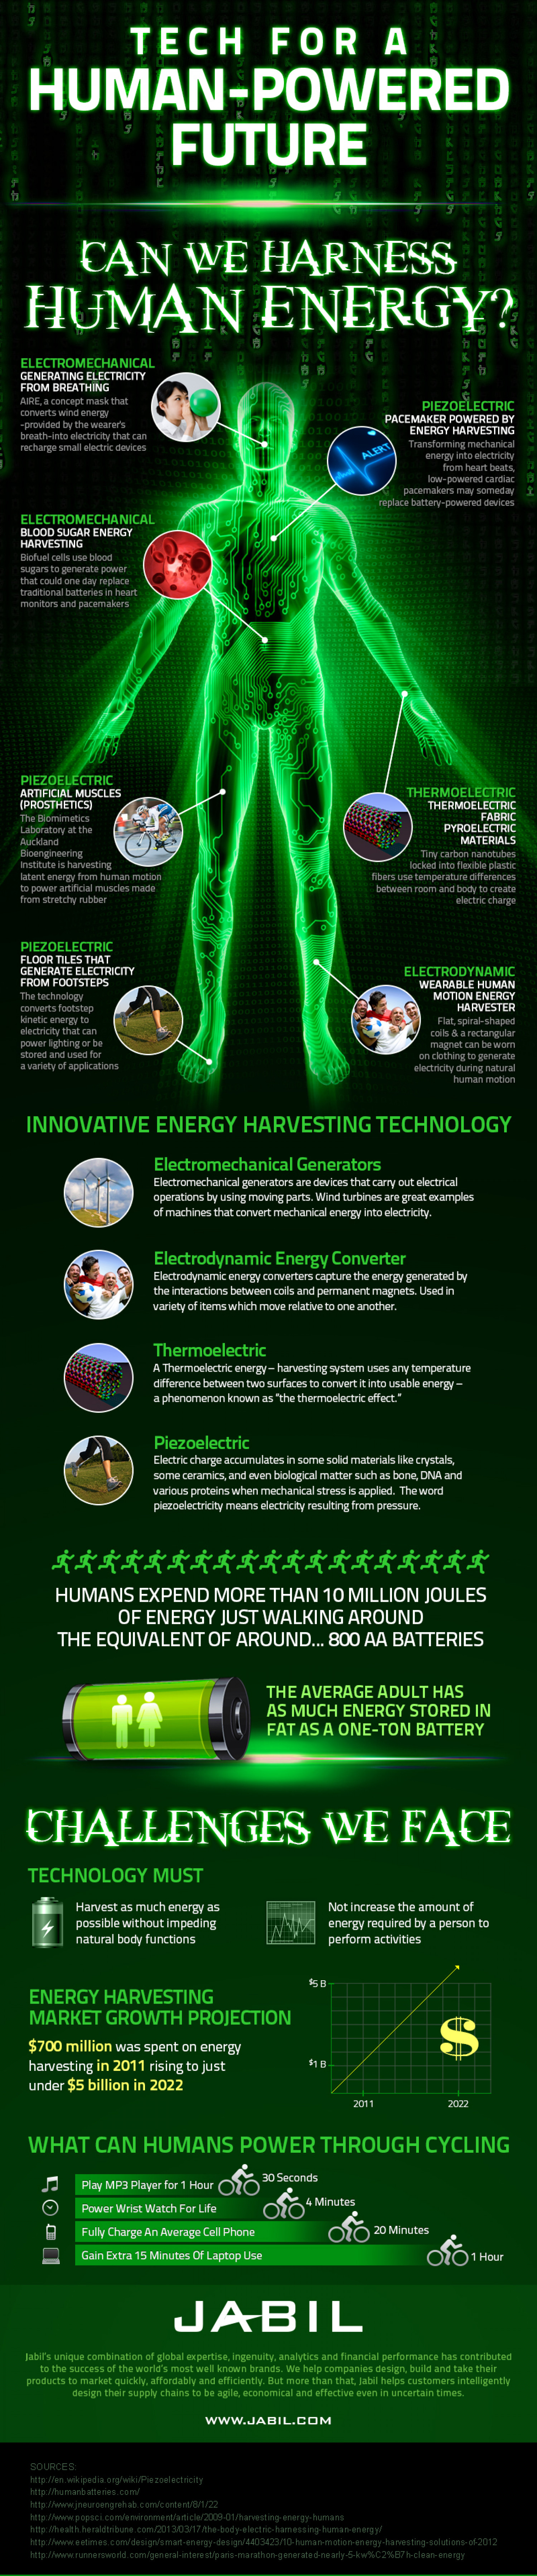 Can We Harness Human Energy? Infographic